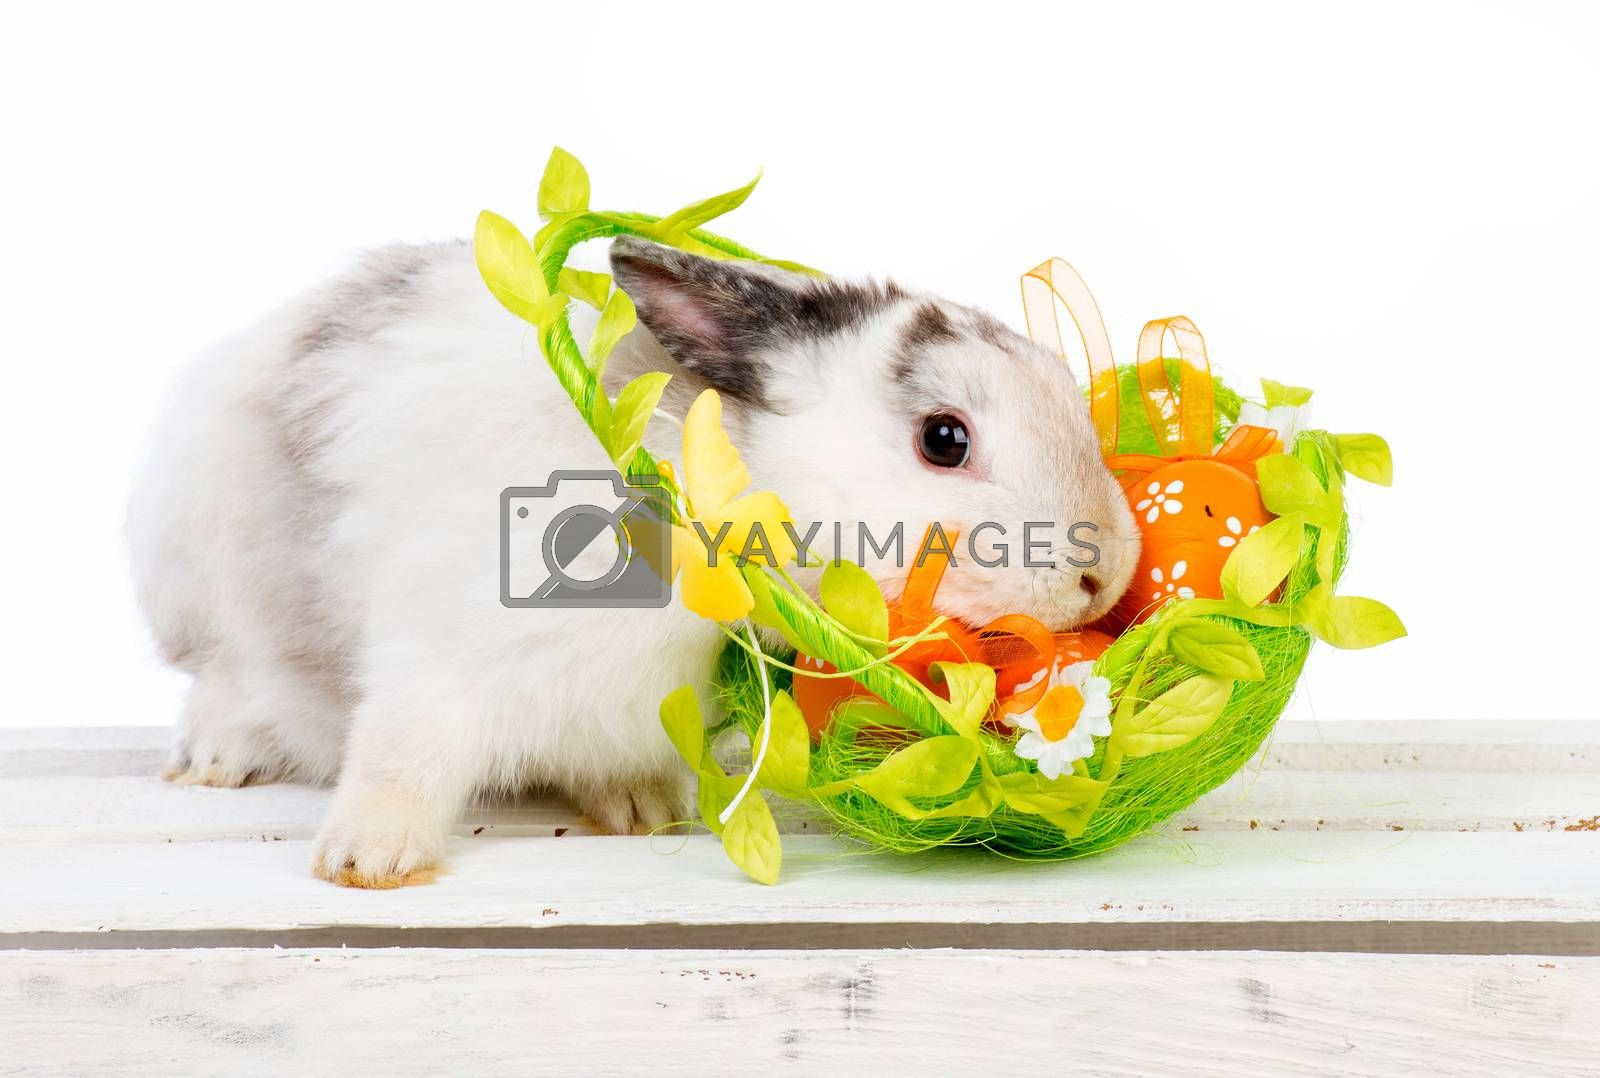 Royalty free image of Easter bunny with basket by GekaSkr